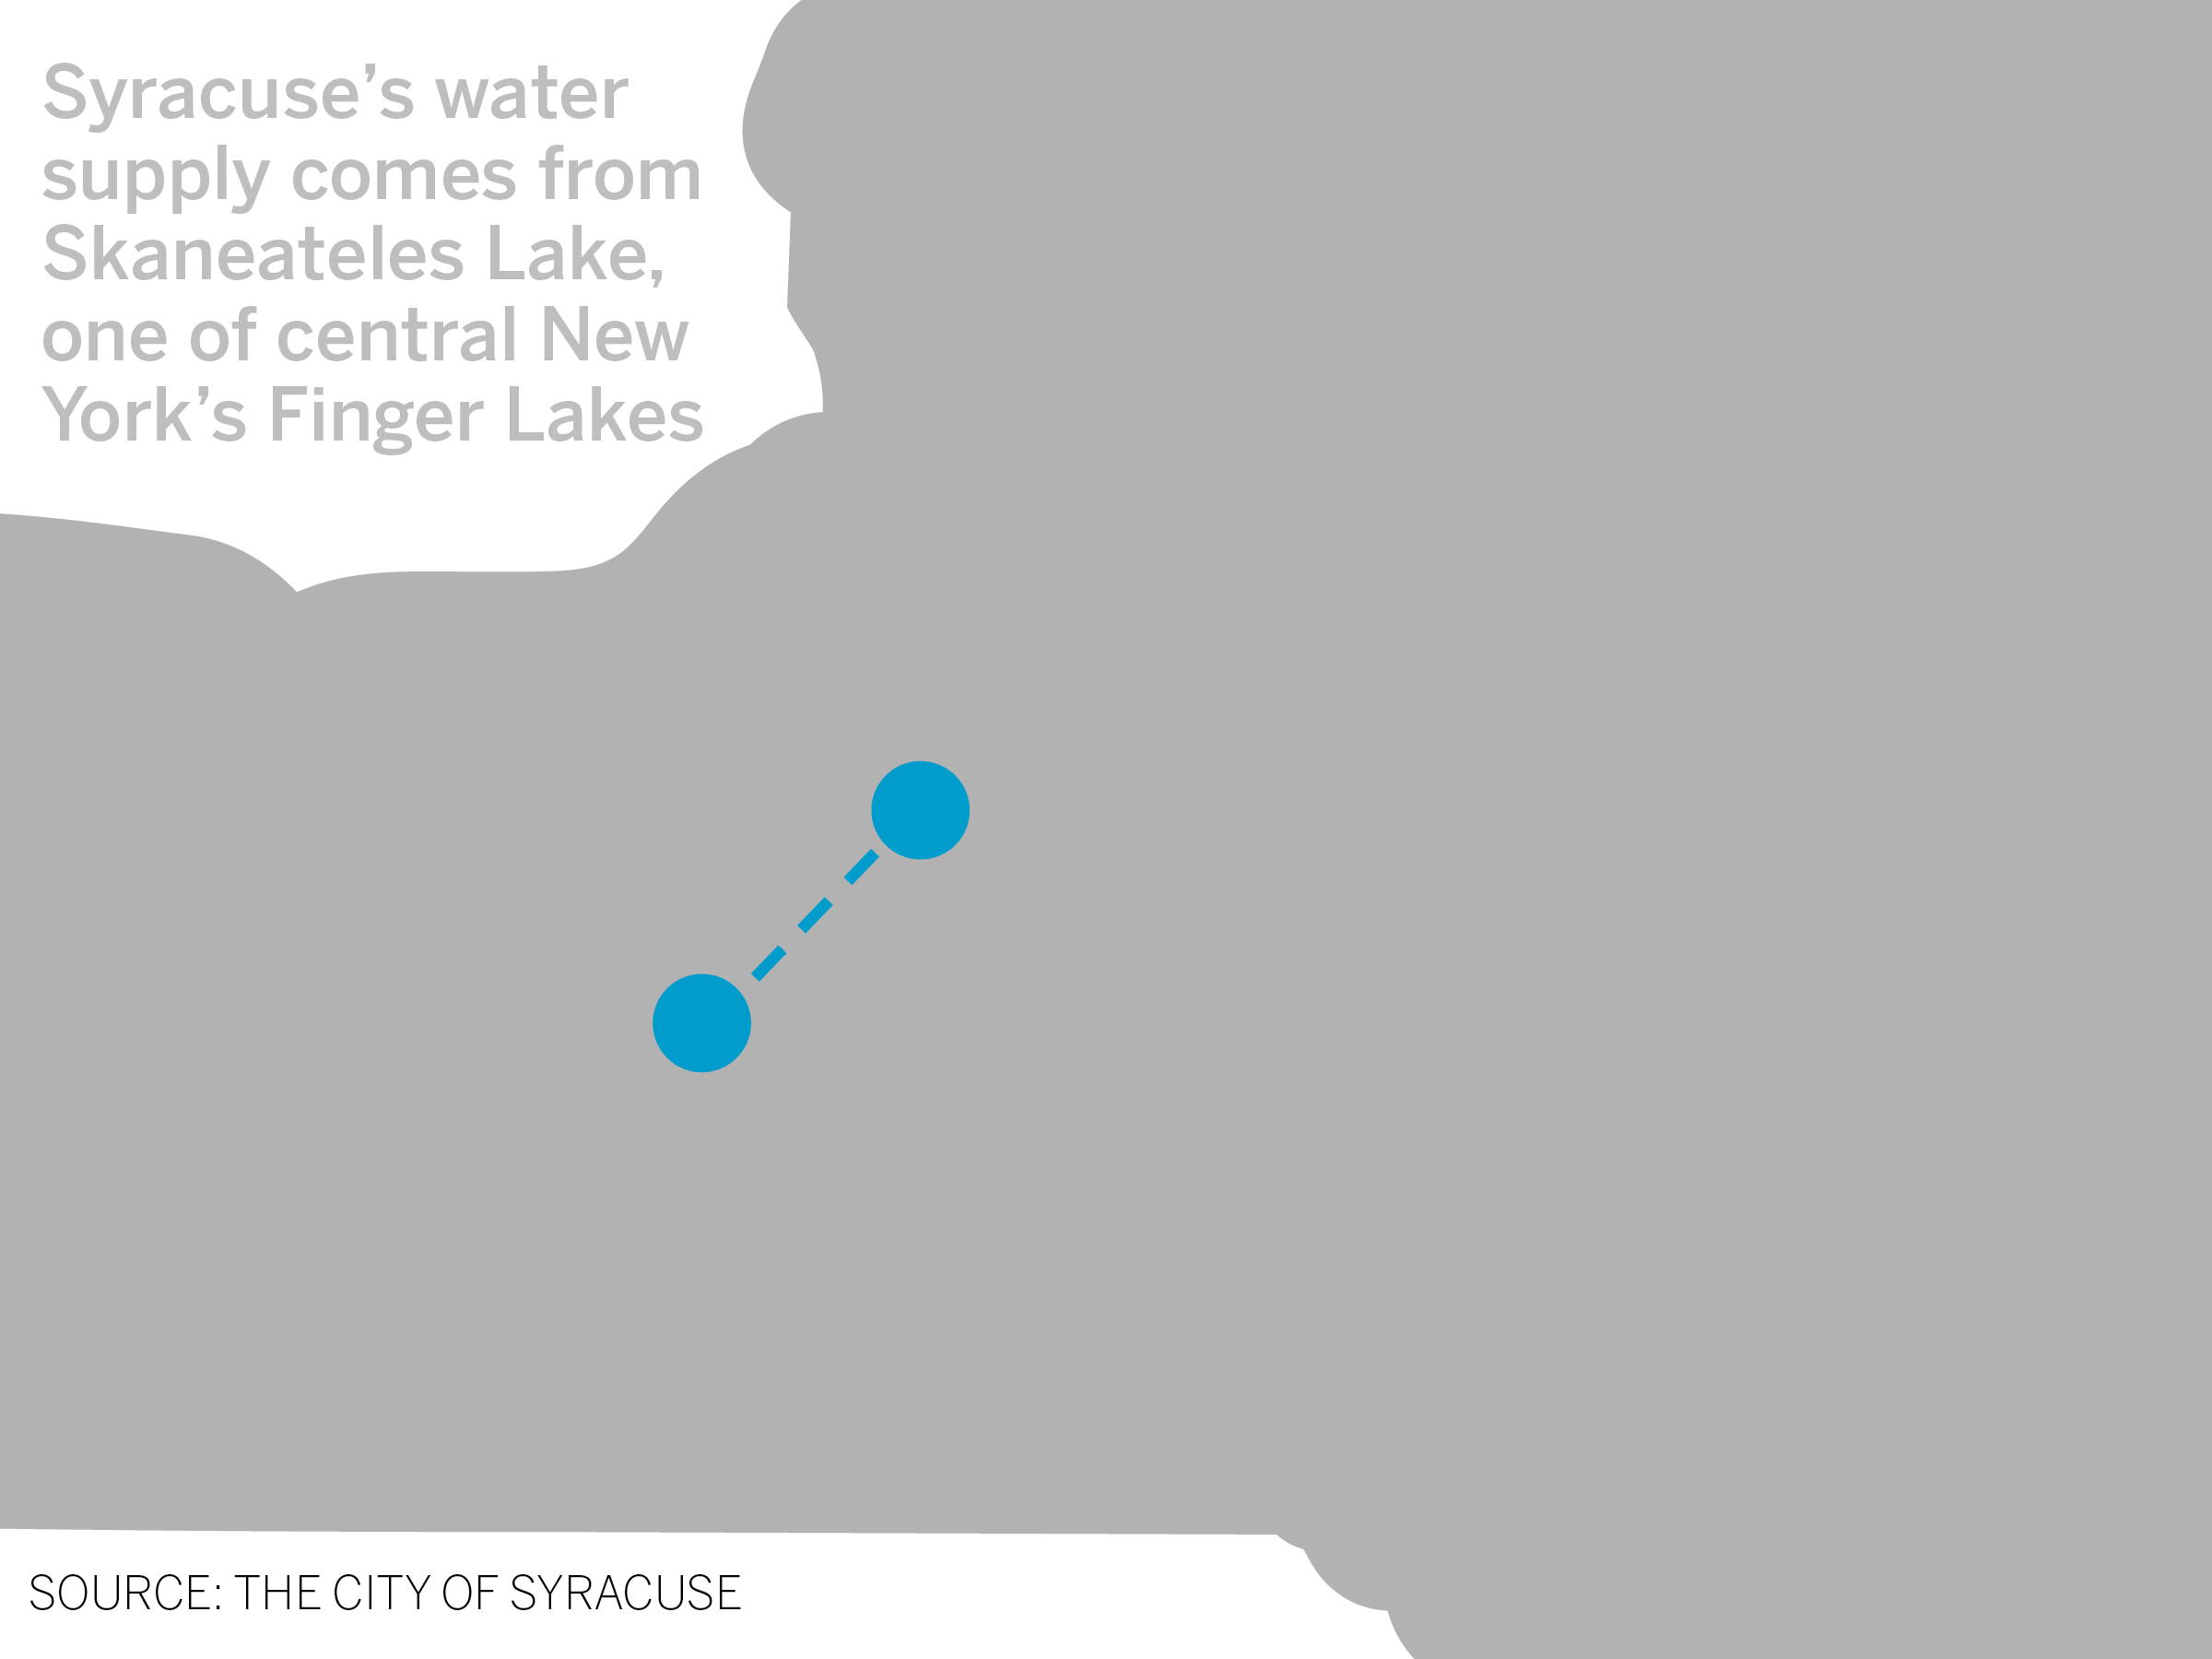 Syracuse's water supply comes from Skaneatles Lake, about 30 minutes from Syracuse.